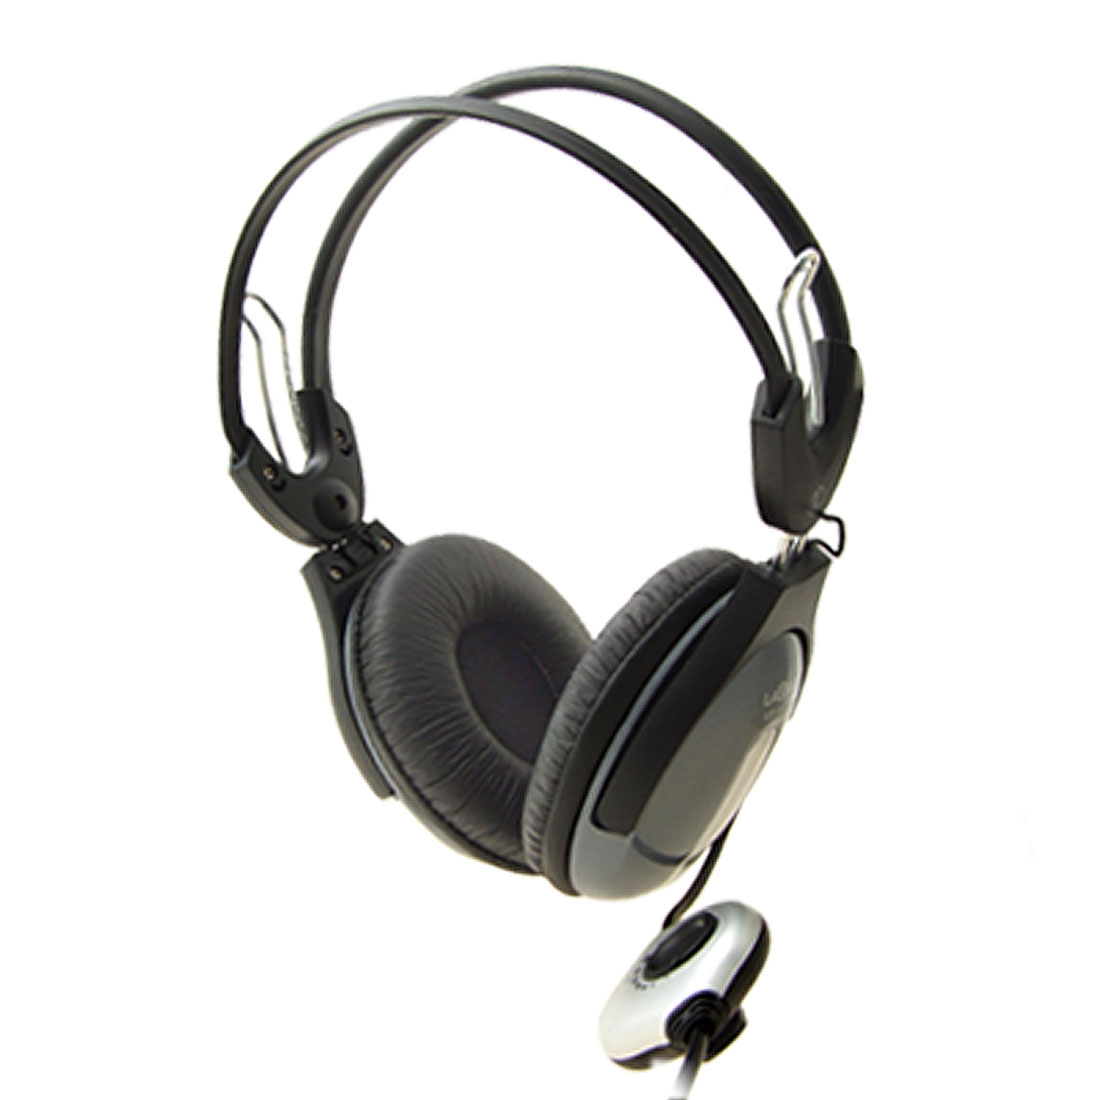 PC Computer Gaming Stereo Headphone Headset with Microphone